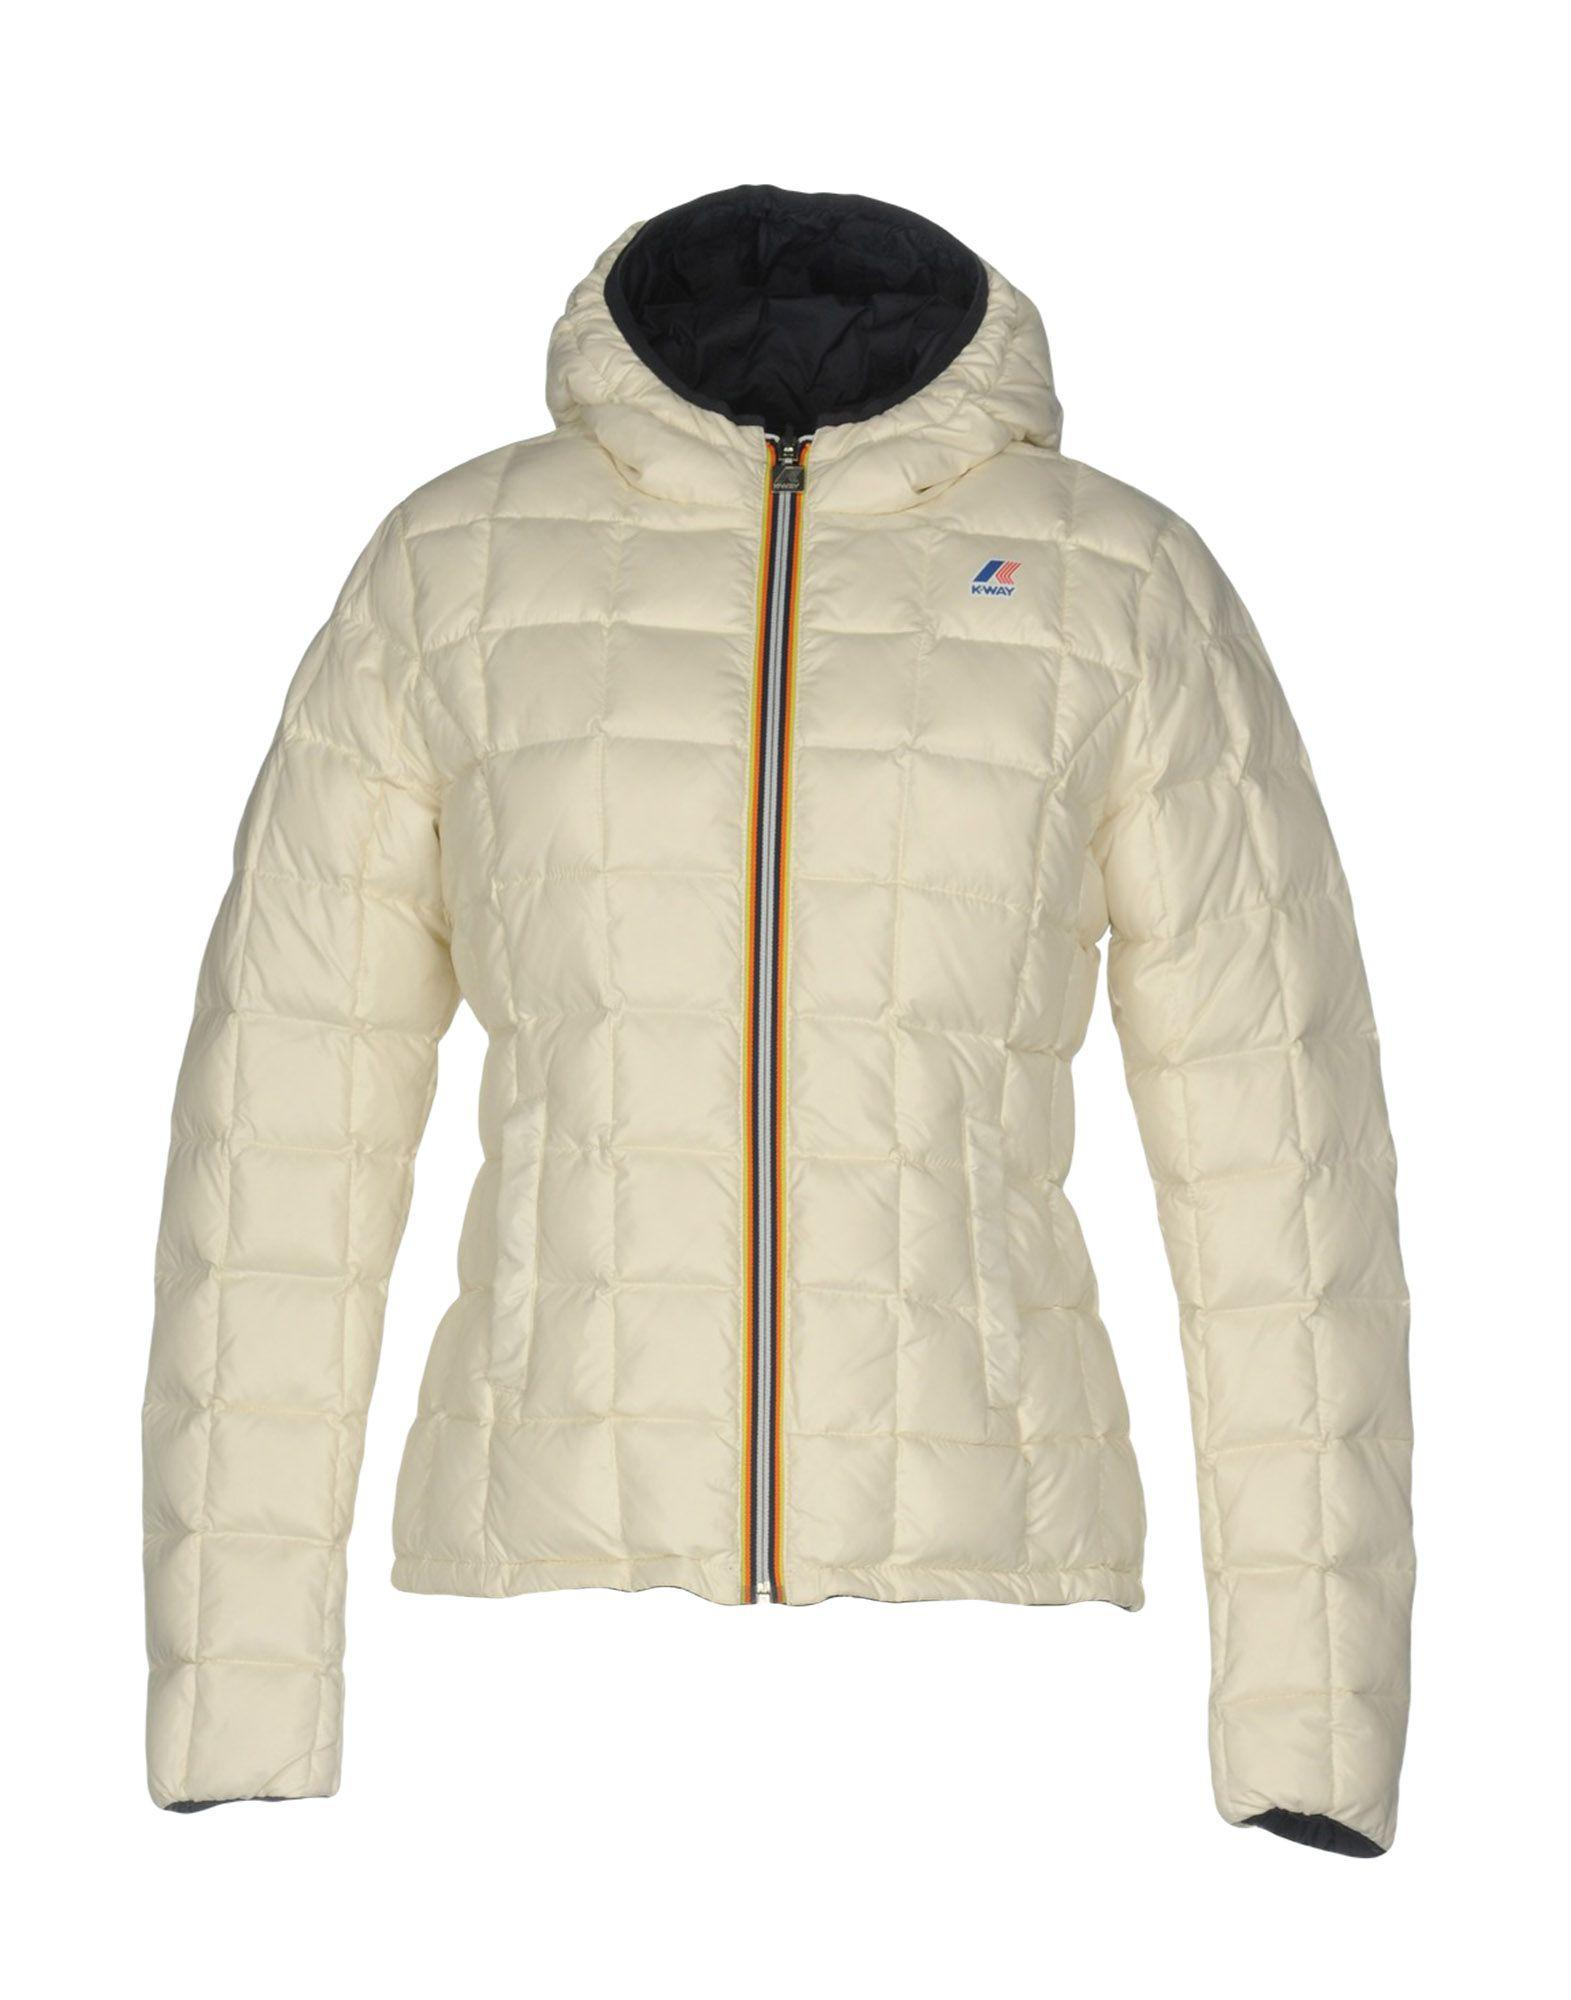 K-way Down Jackets In Ivory